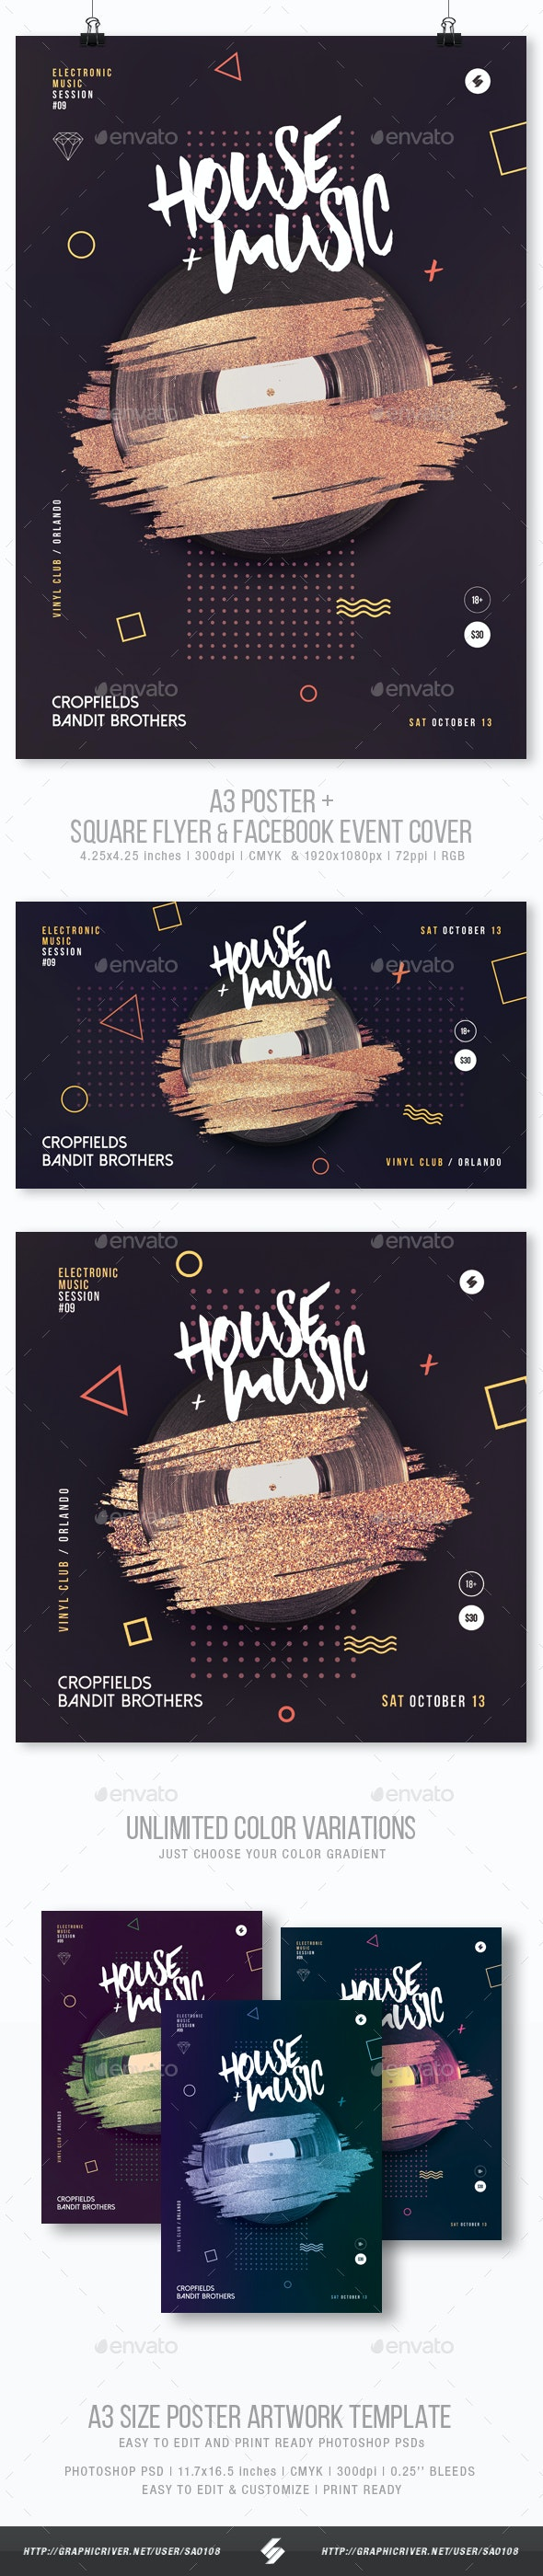 House Music vol.2 - Club Party Flyer / Poster Template A3 - Clubs & Parties Events